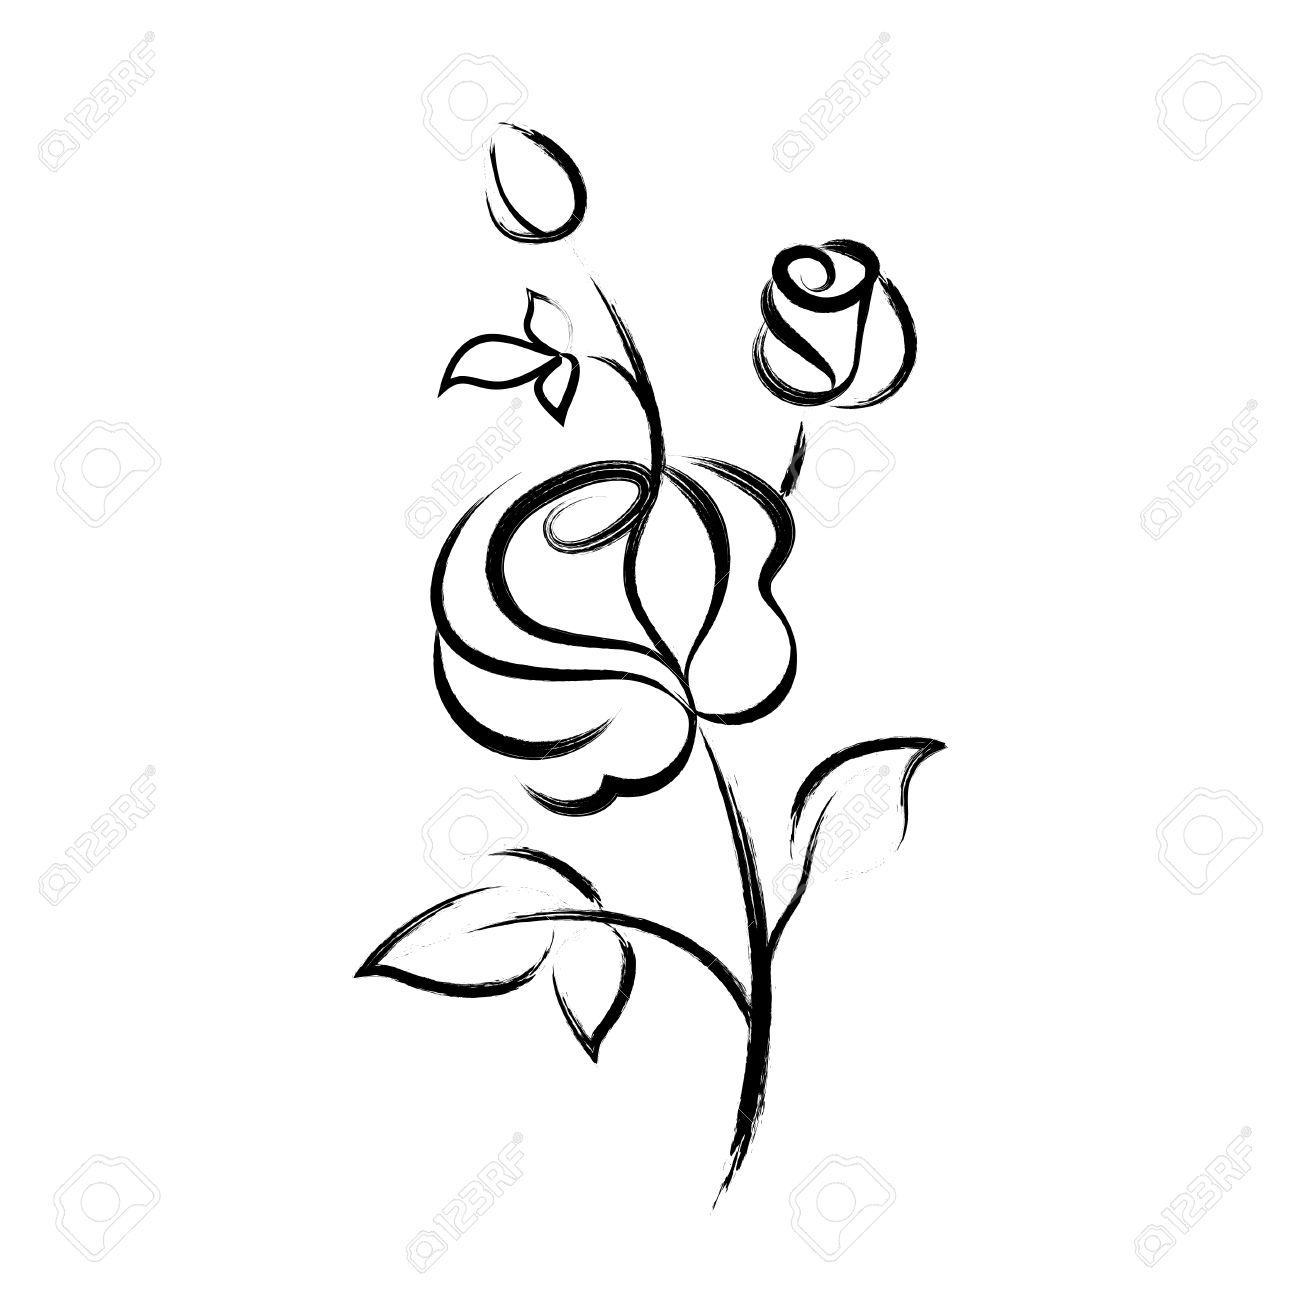 Black Hand Drawn Rose Isolated On White Background Royalty Free